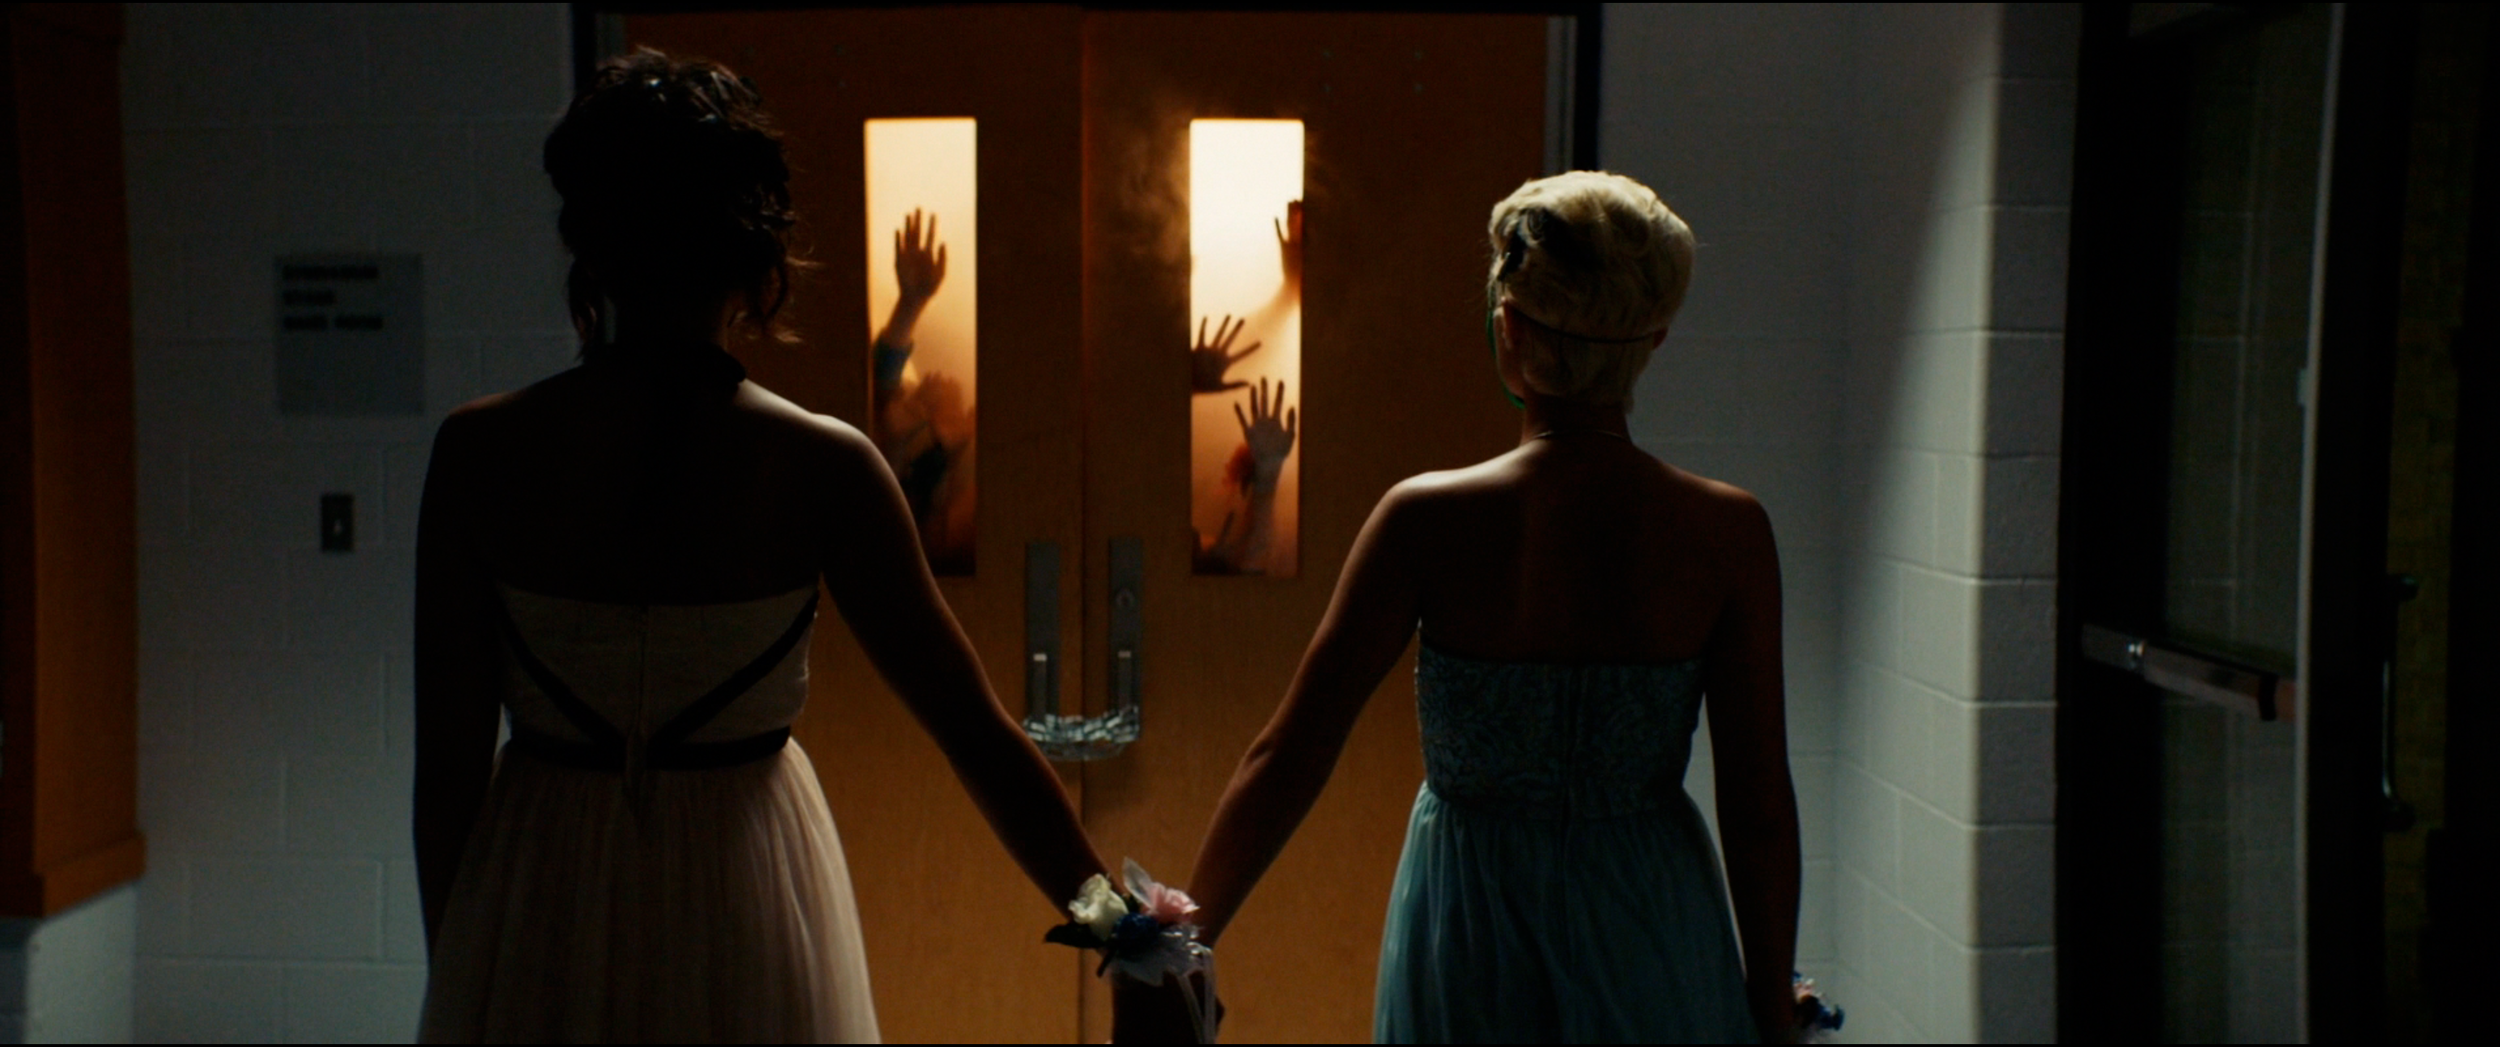 tragedy-girls-holding-hands-finale.png